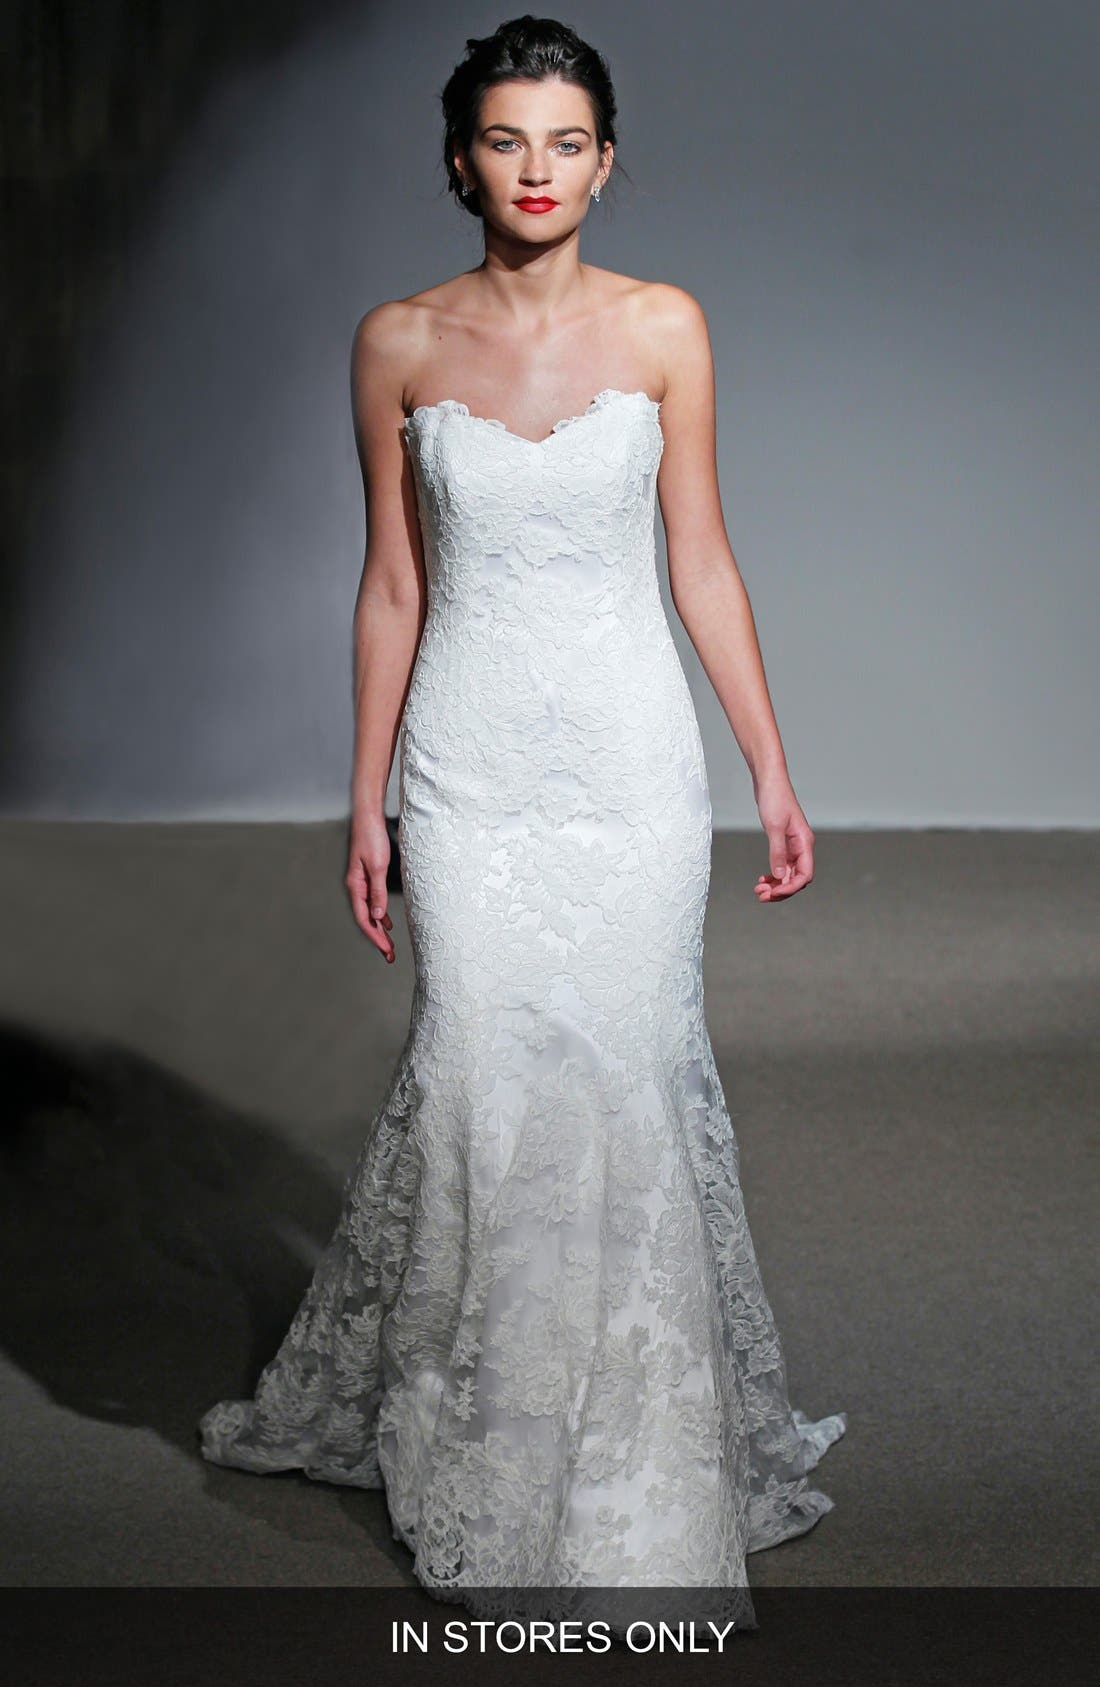 Anna Maier Couture 'Mirielle' Strapless Corded Lace Trumpet Gown (In Stores Only)